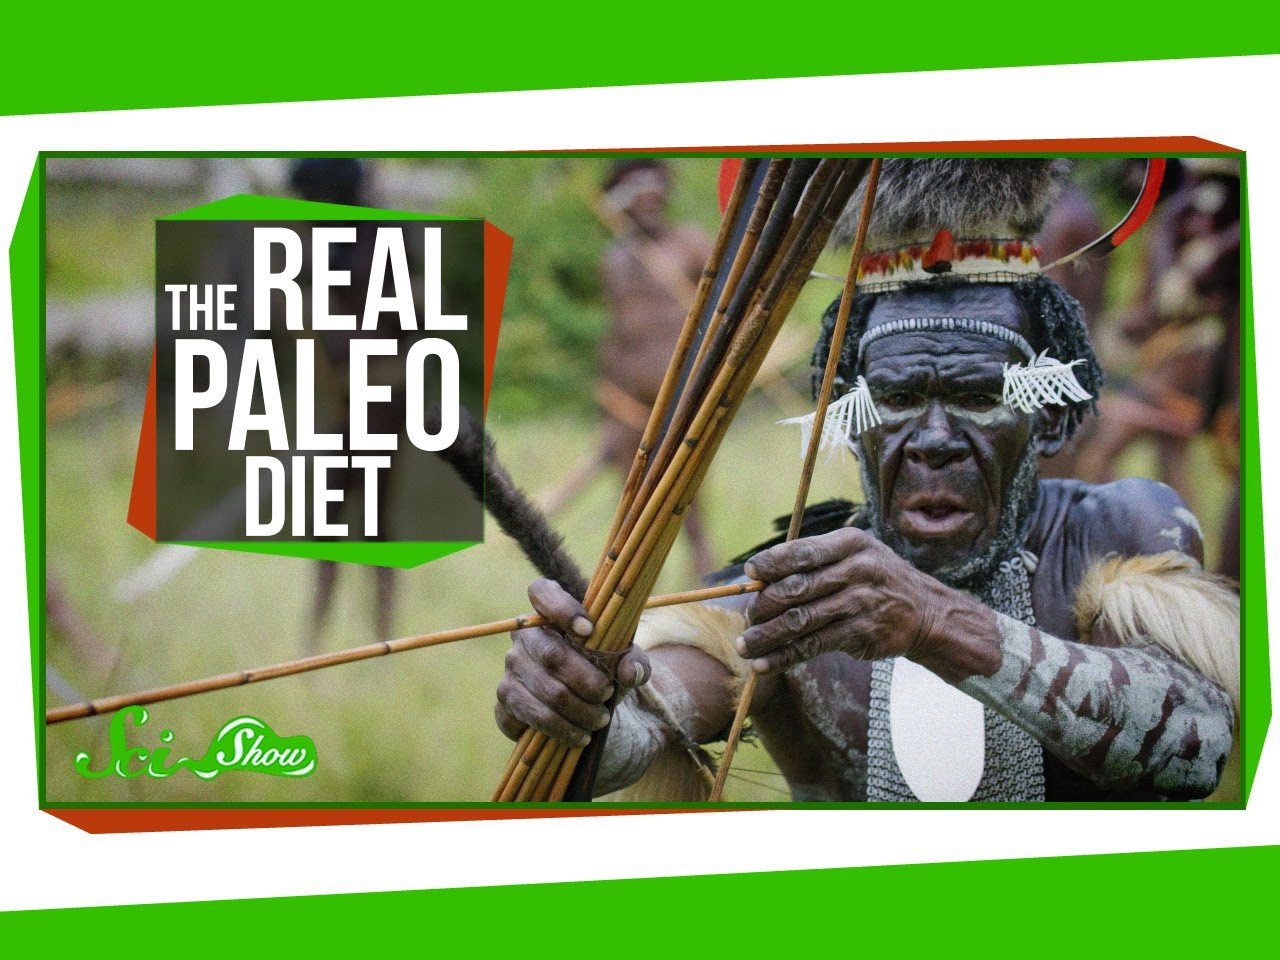 The Real Paleo Diet (VIDEO)